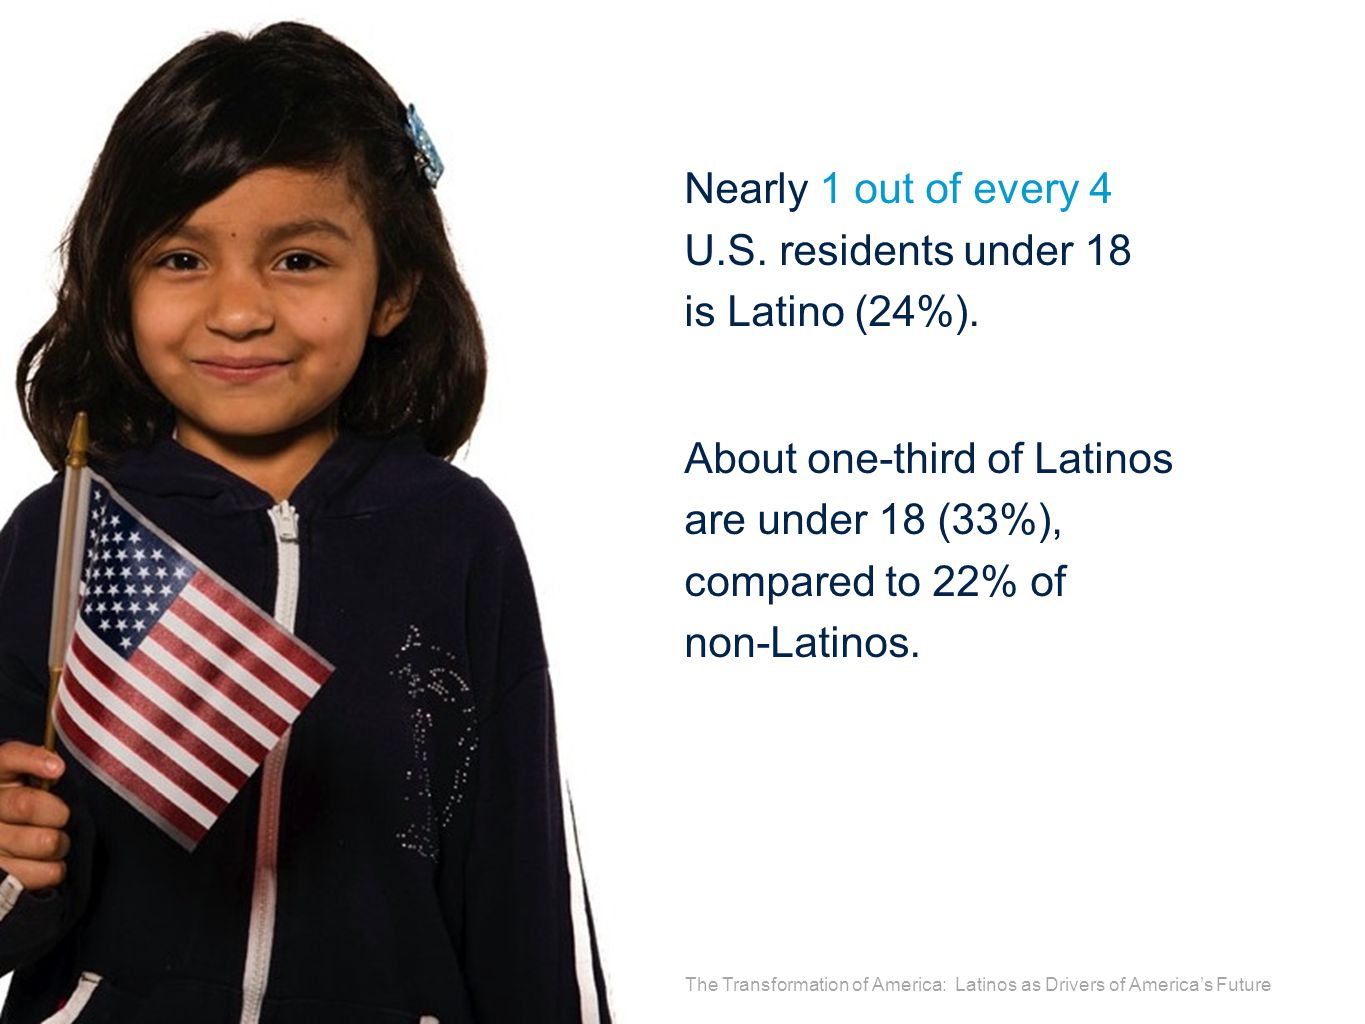 In 2014, 25.5 million Latinos will be eligible to vote.